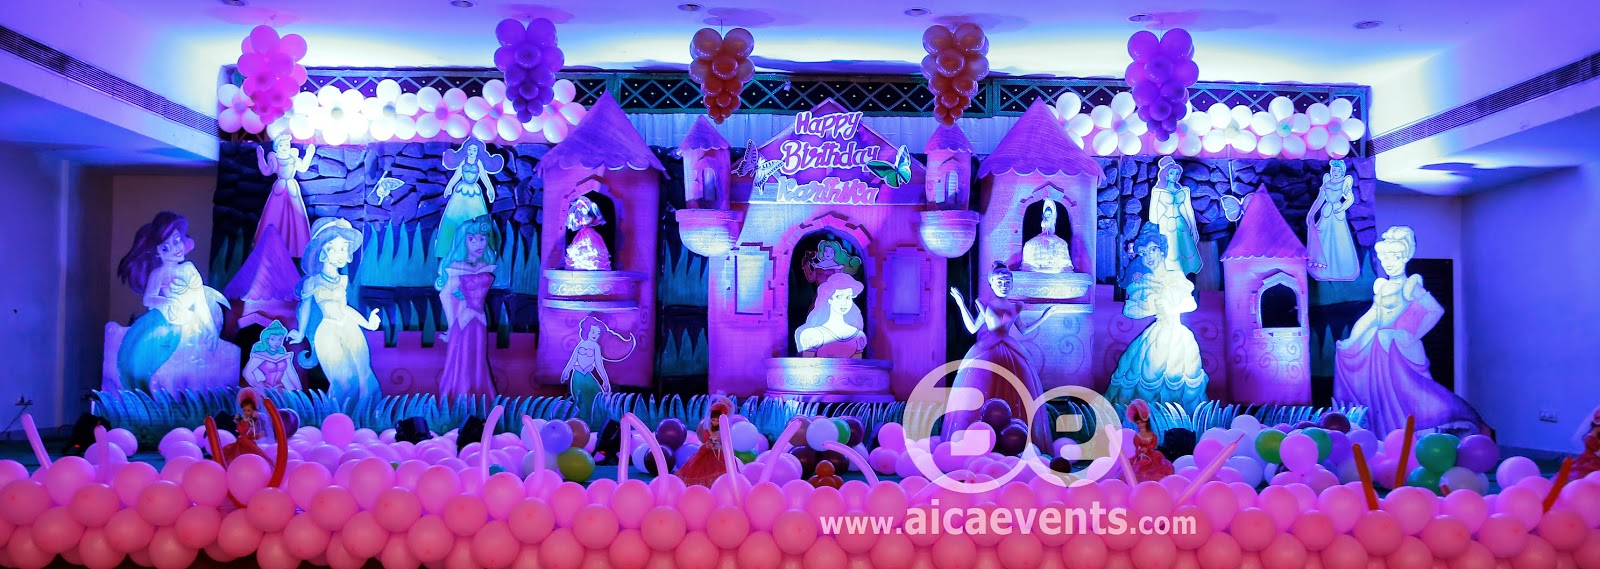 Aicaevents princess theme birthday decorations for 1st birthday stage decoration